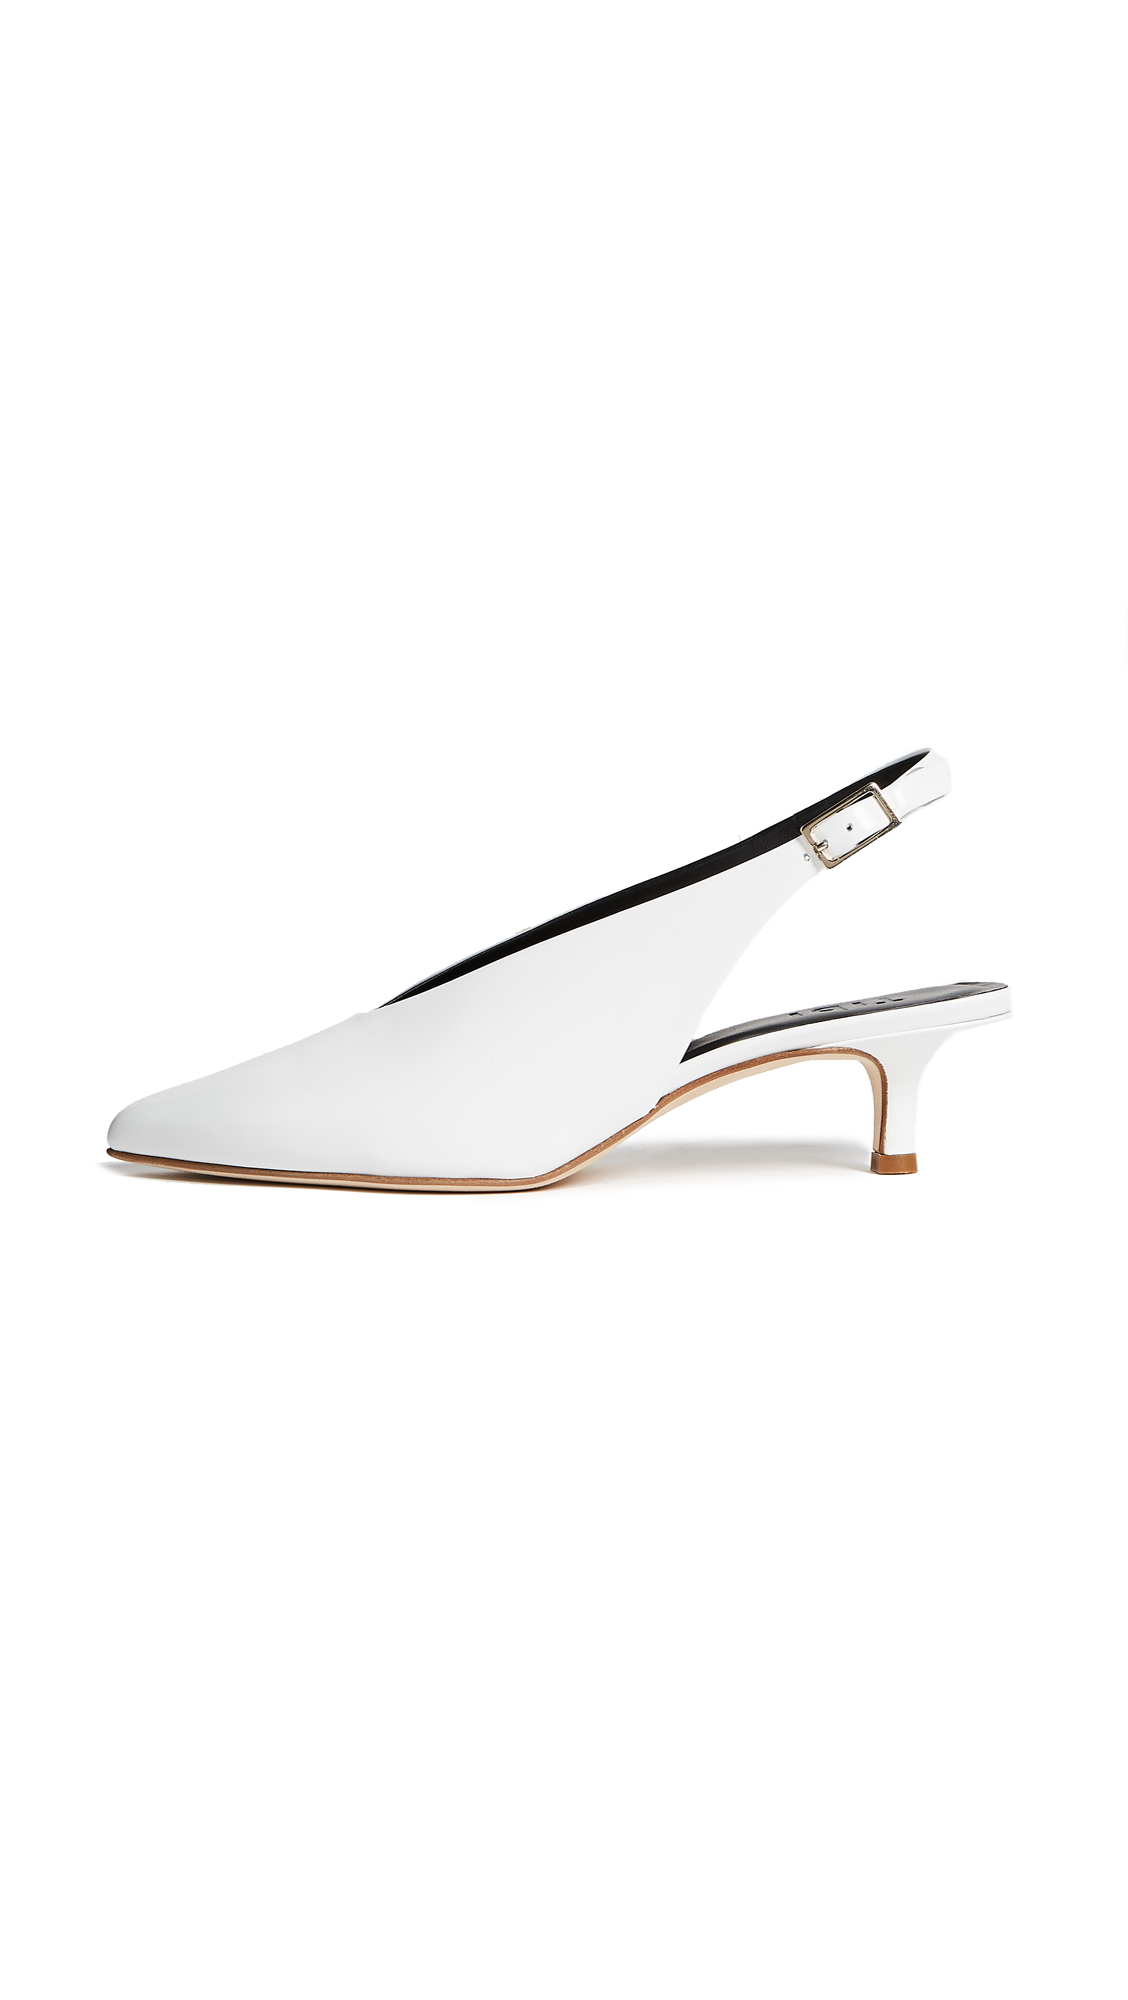 Tibi Lia Slingback Pumps - Bright White